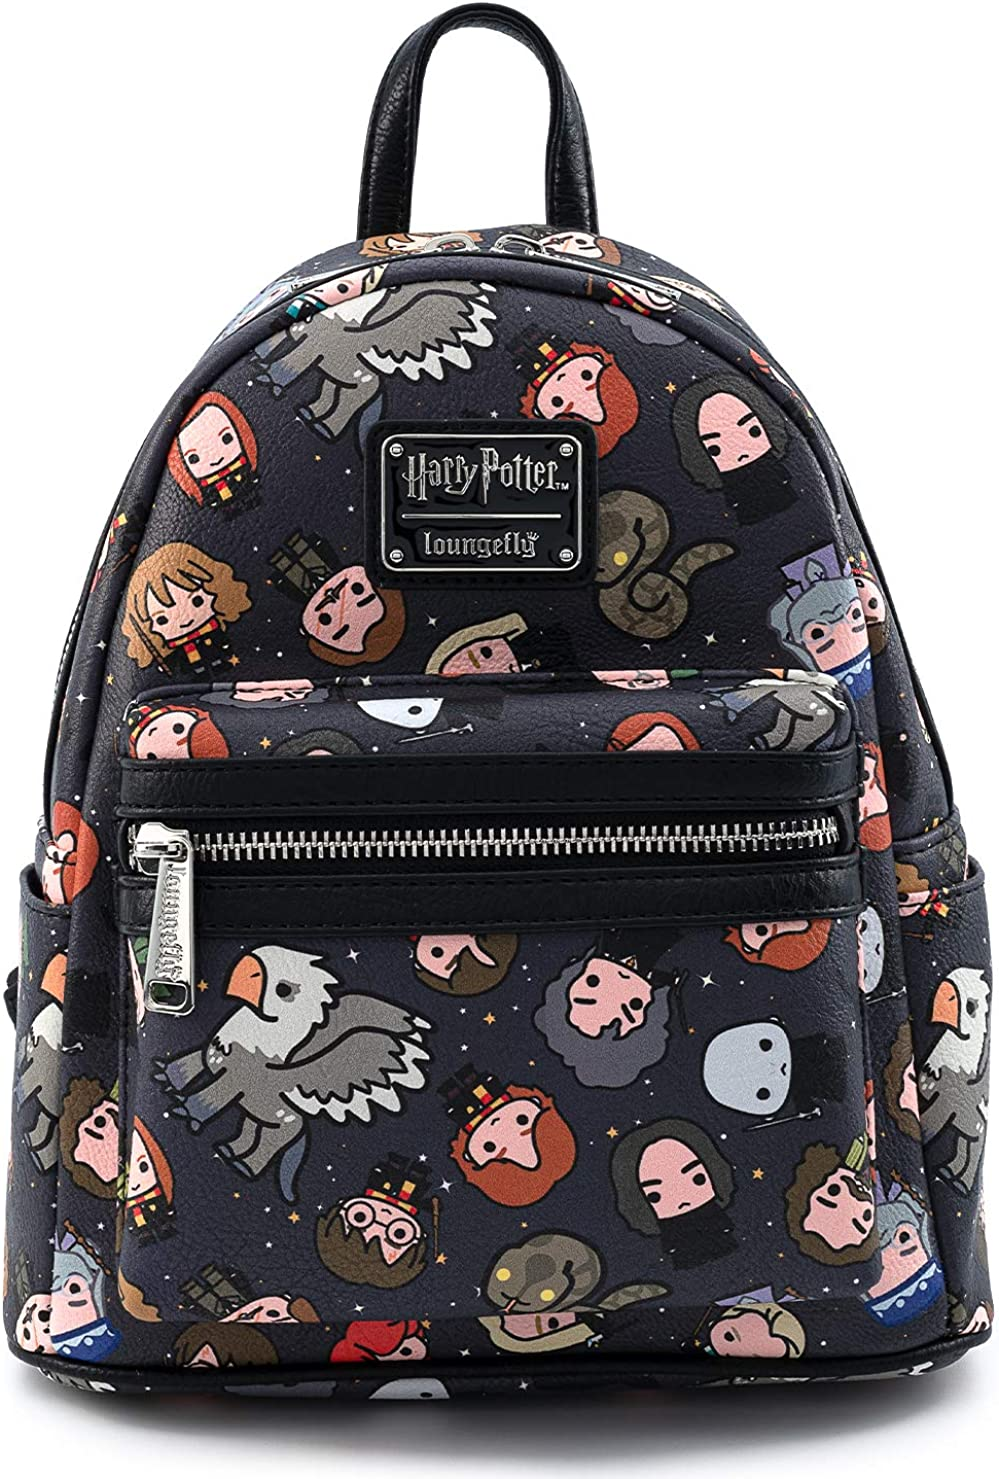 Loungefly Harry Potter Characters All Over Print Womens Double Strap Shoulder Bag Purse